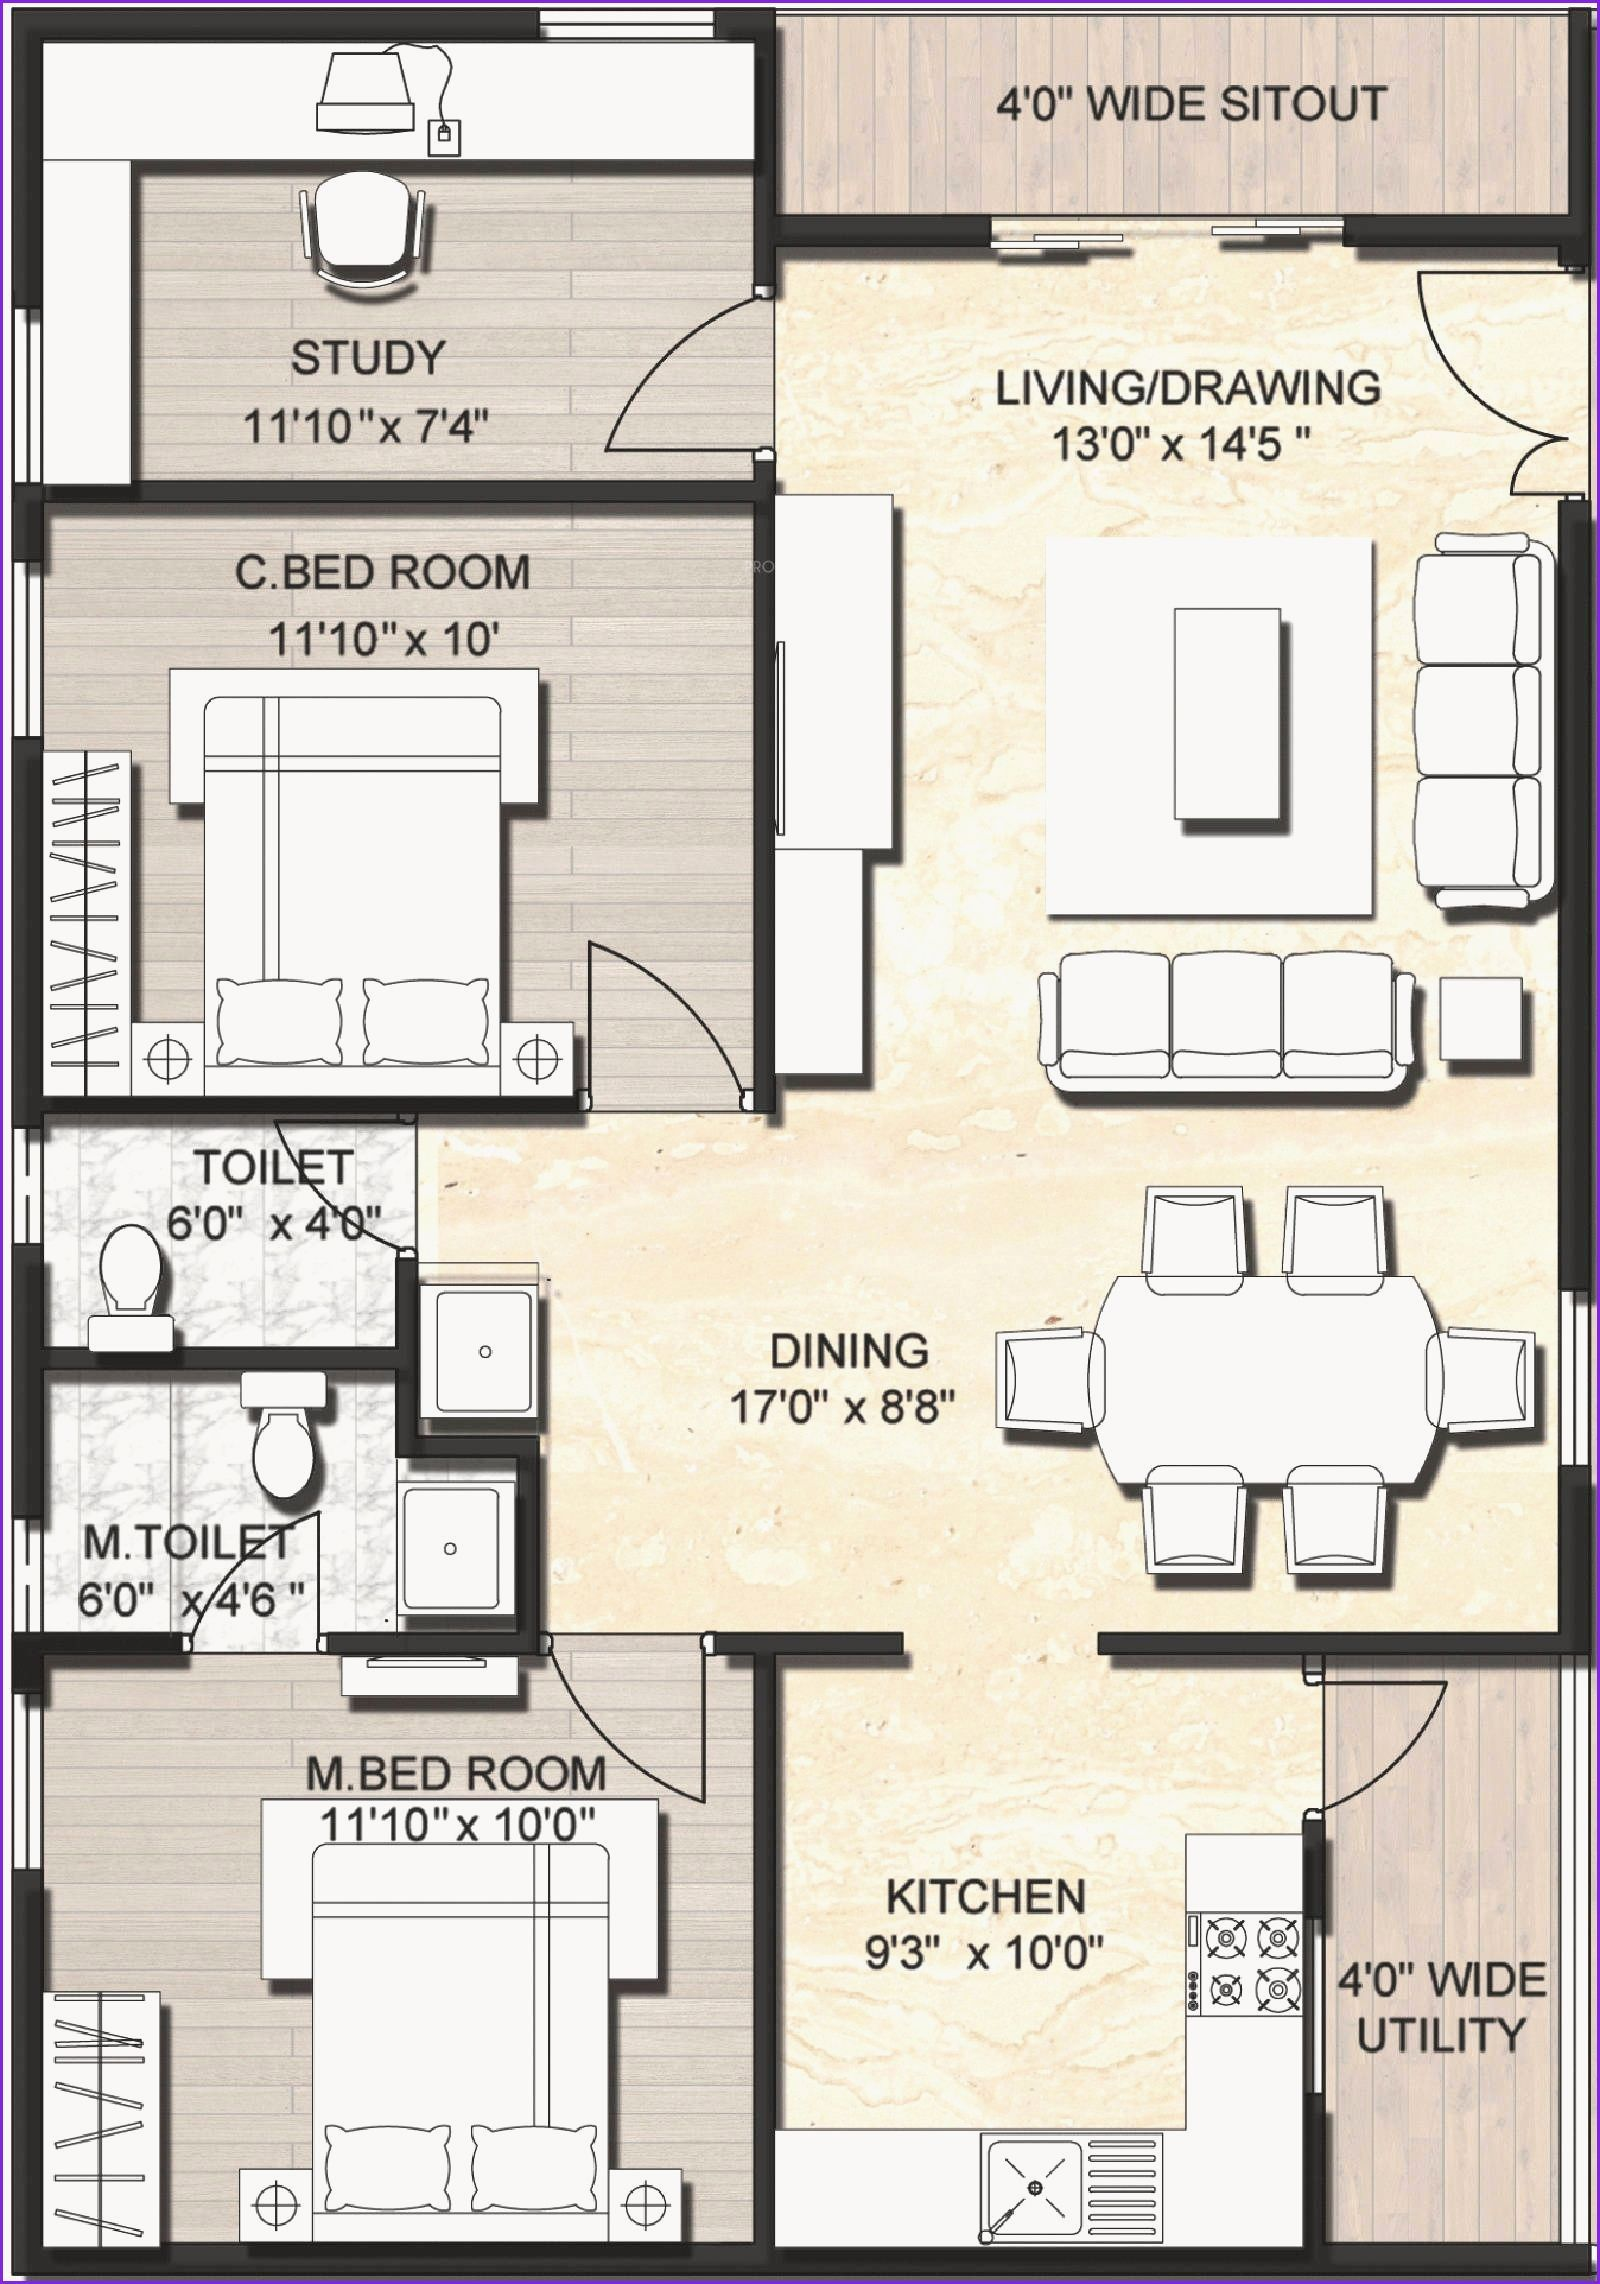 Awesome 900 Sq Ft House Plans Model House Plan 900 Sq Ft House 1200 Sq Ft House